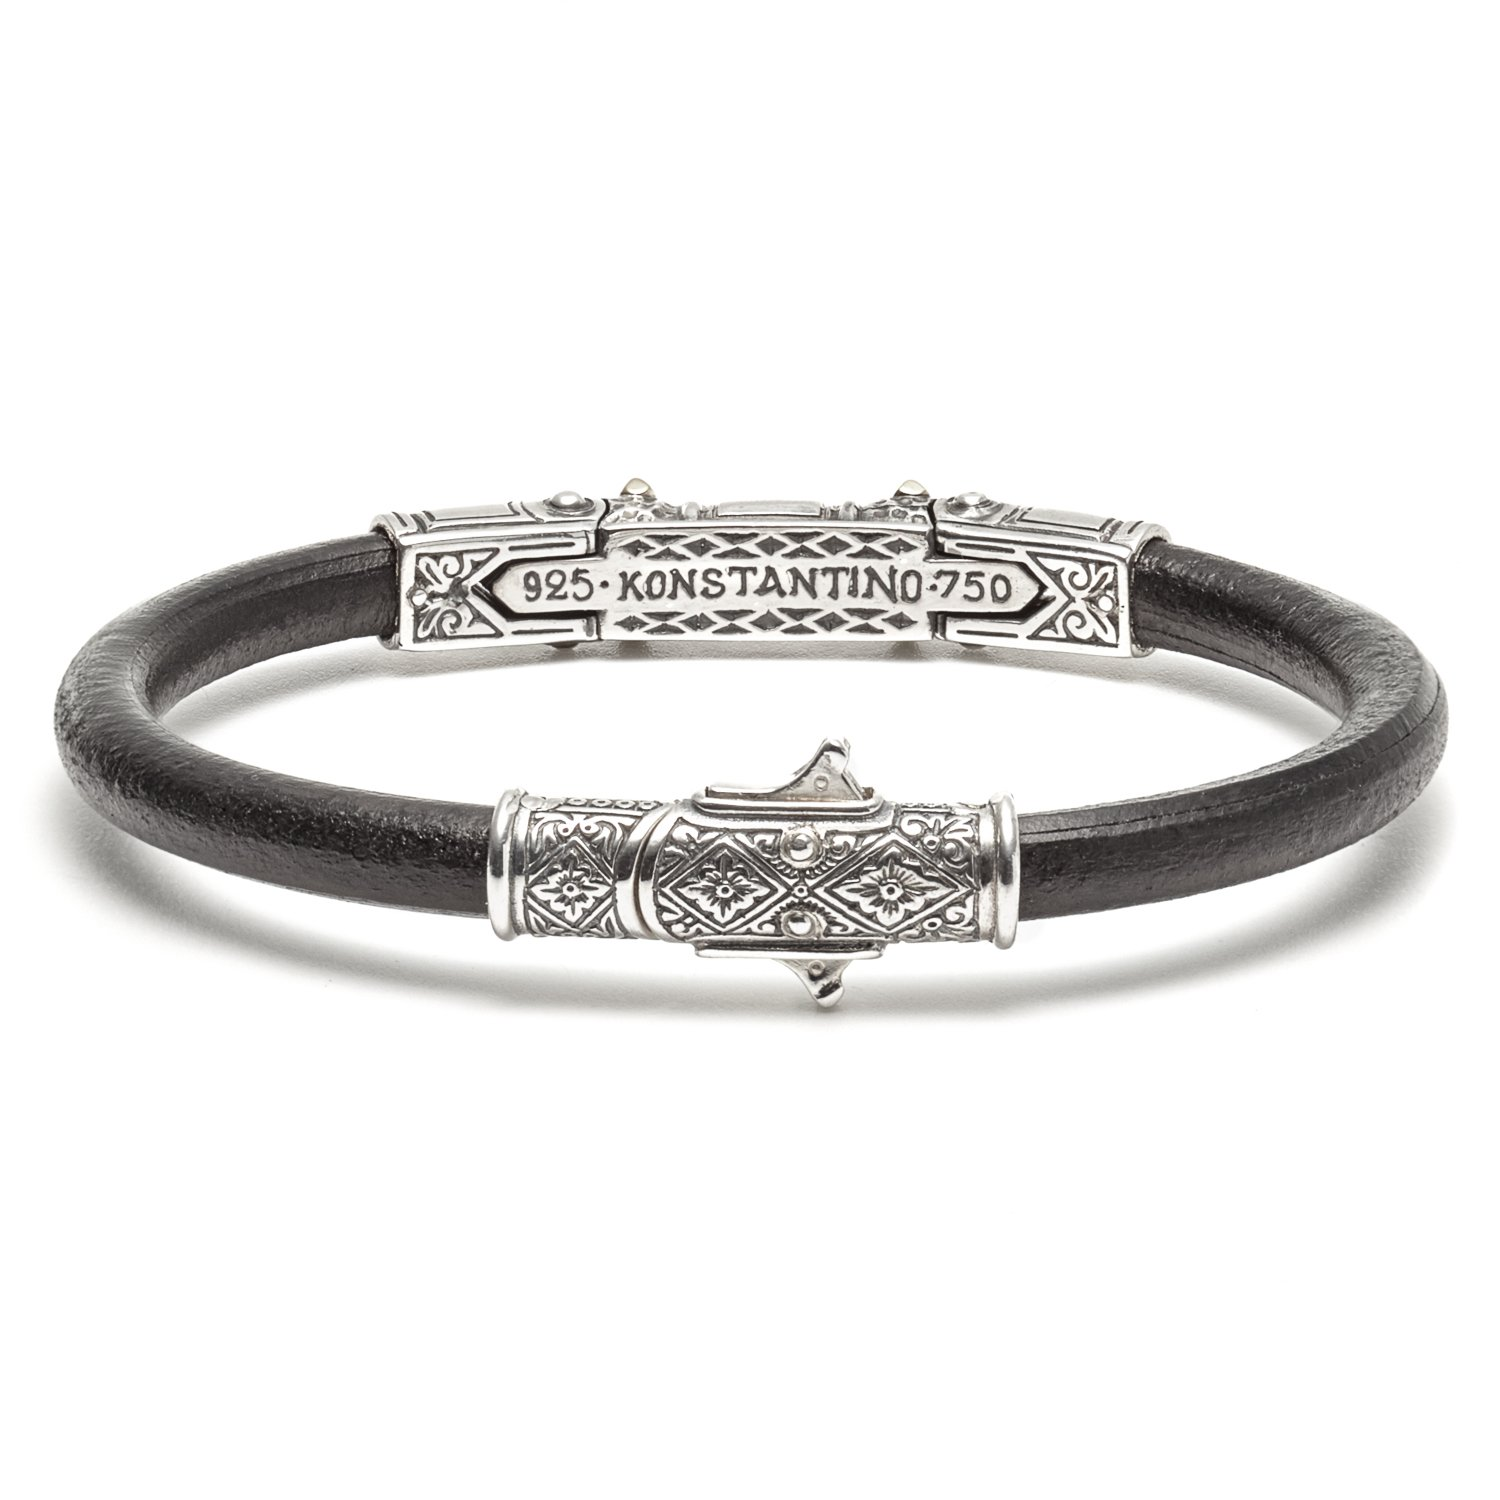 Konstantino Hephaestus Collection Silver and Gold Leather Bracelet by Konstantino (Image #2)